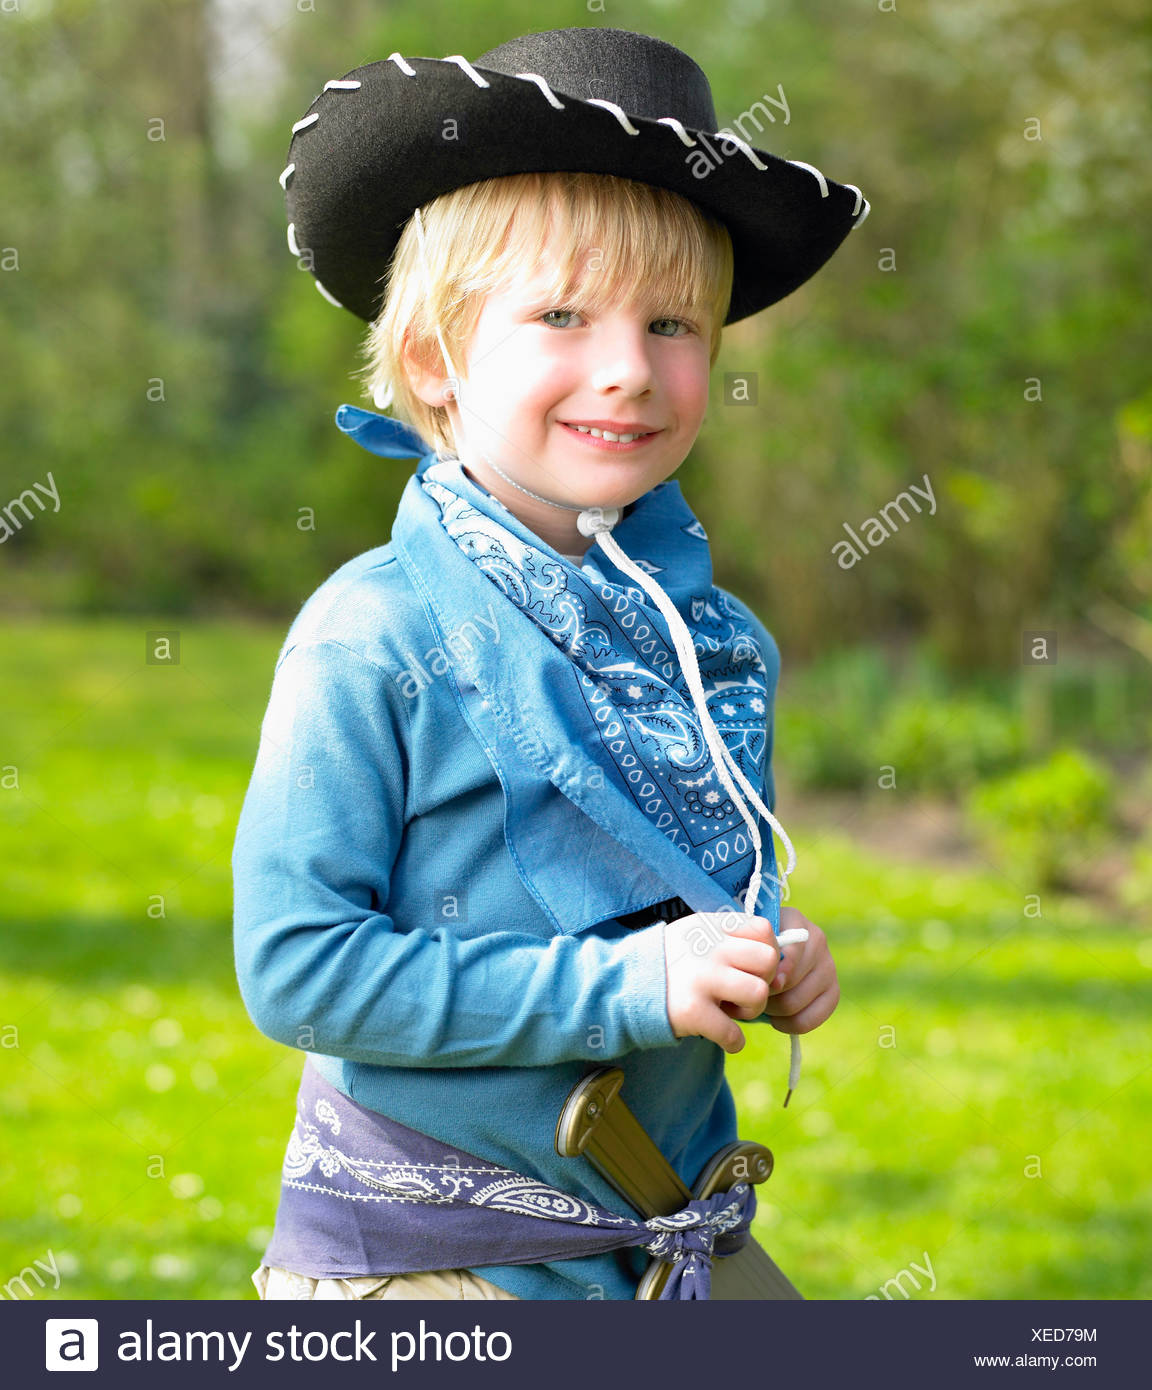 Cowboy Clothes Stock Photos & Cowboy Clothes Stock Images - Alamy